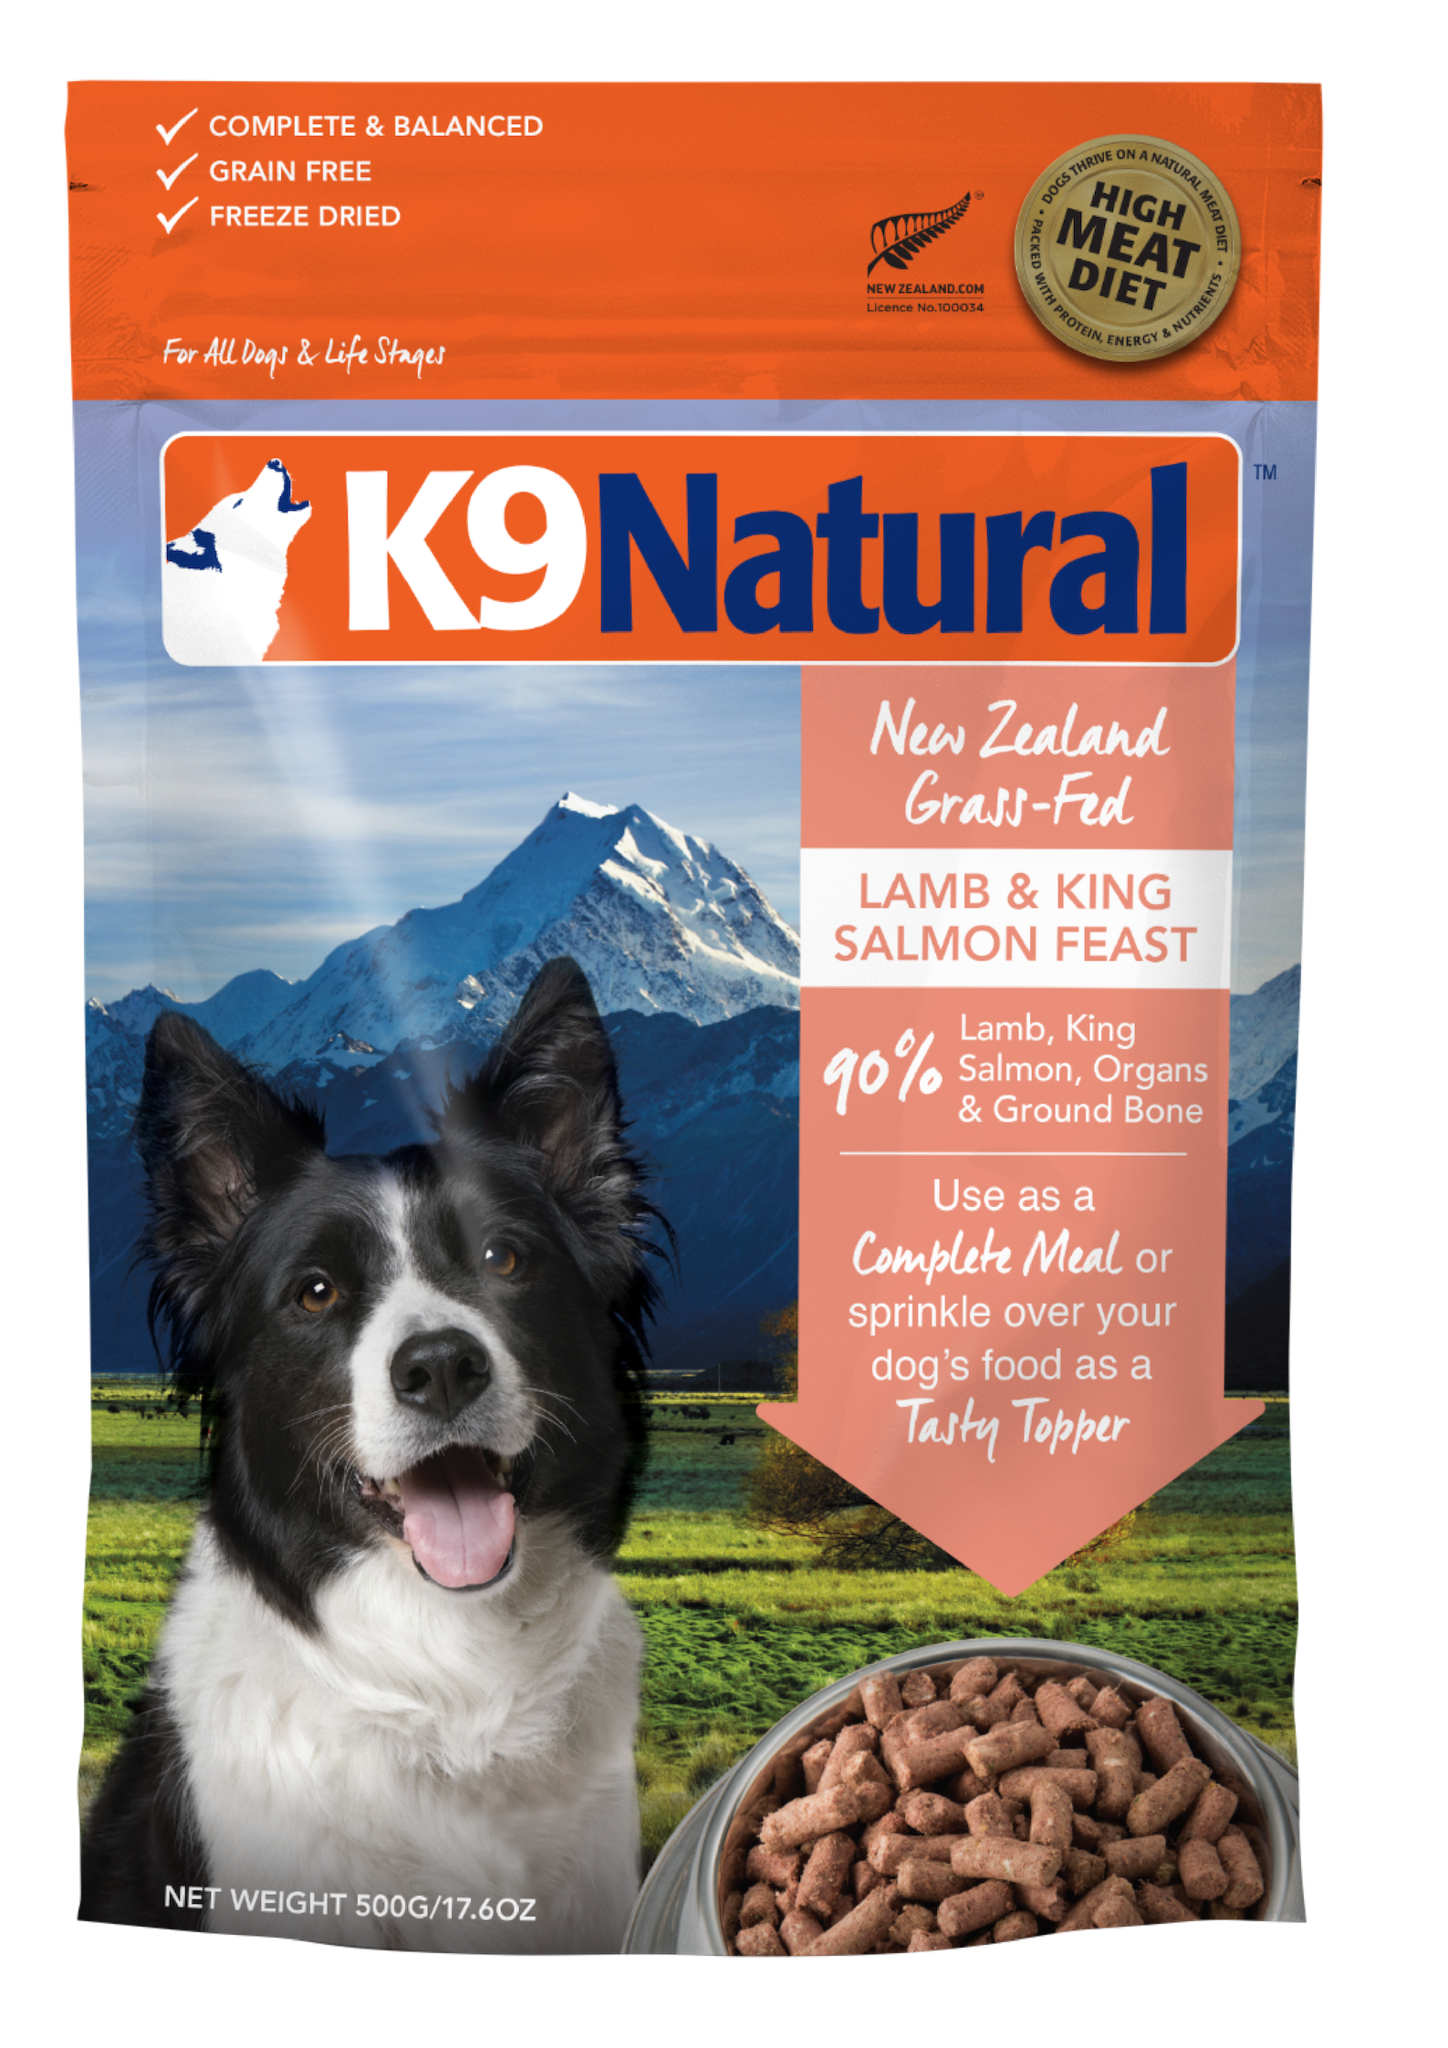 K9 Natural K9 Natural Freeze Dried Lamb & Salmon Feast Dog Food 17.6oz